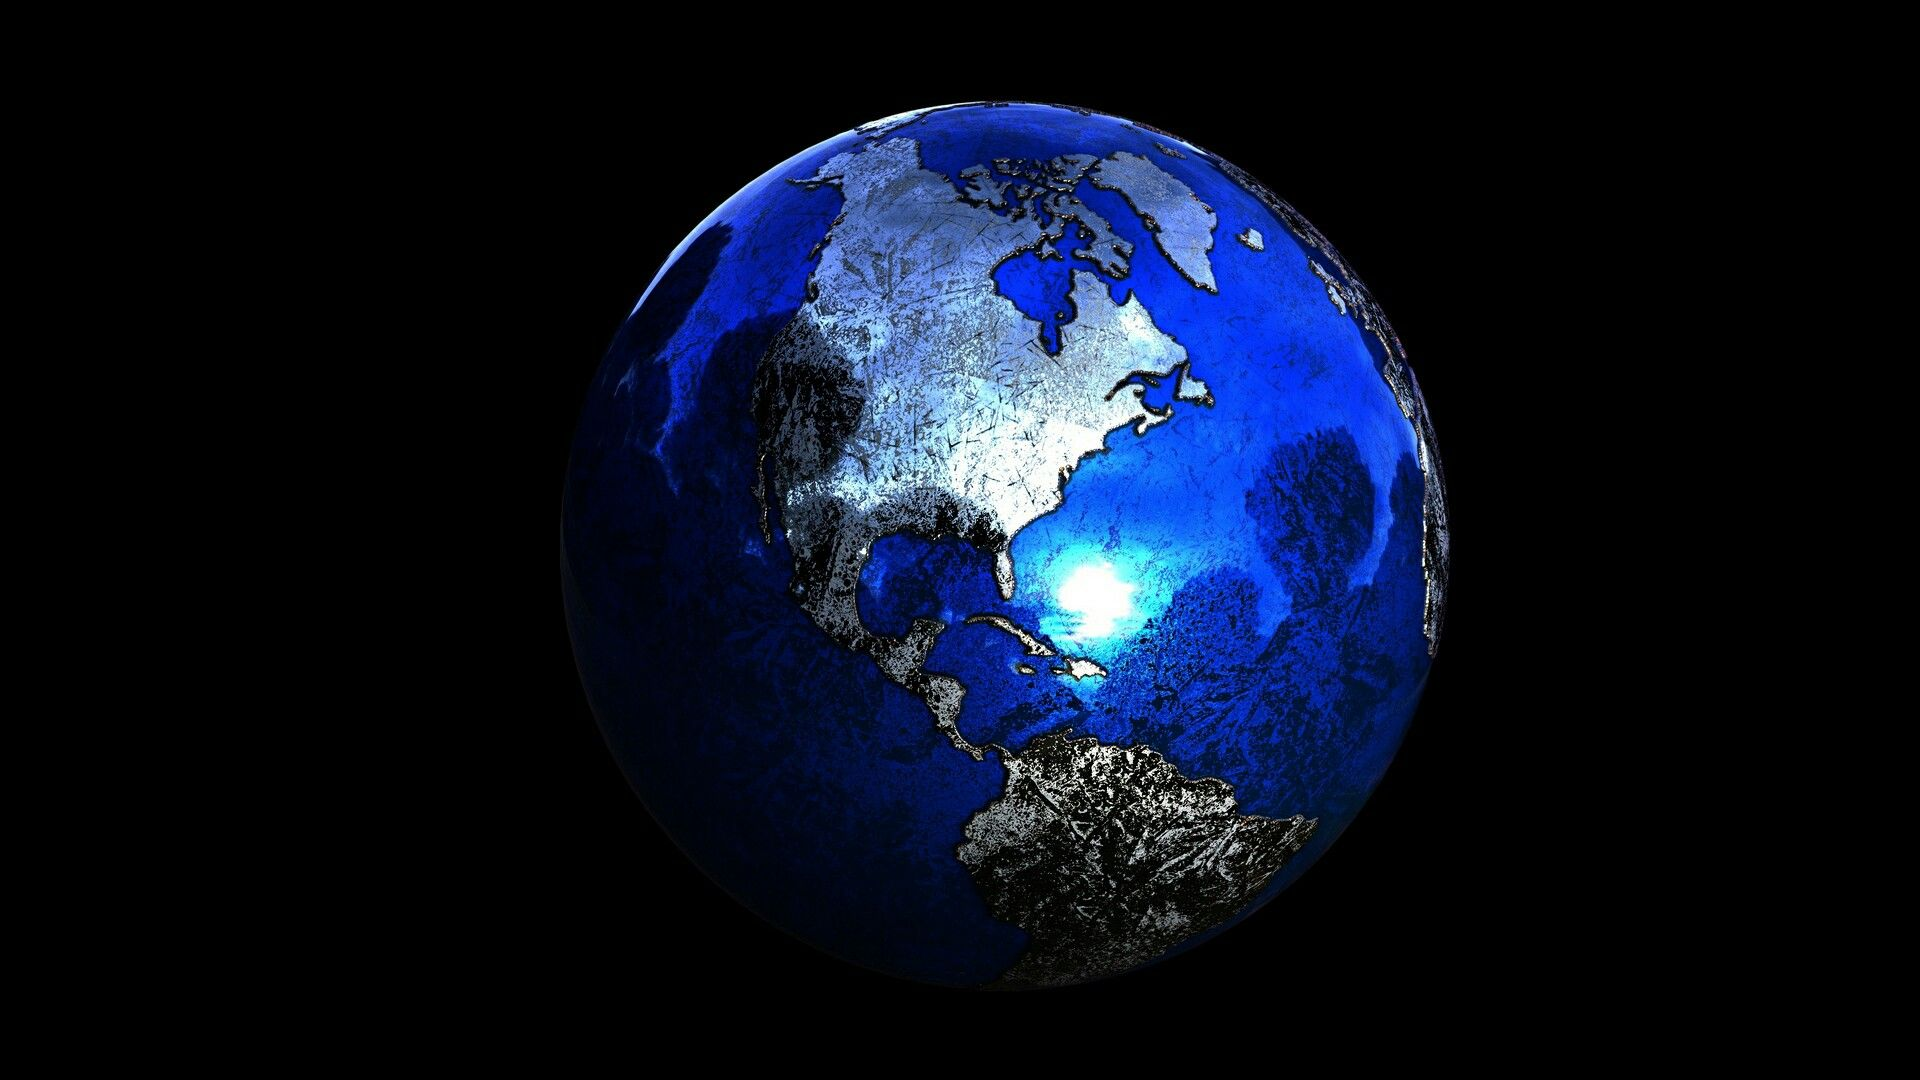 earth wallpaper 3d pinterest in 2020 (With images